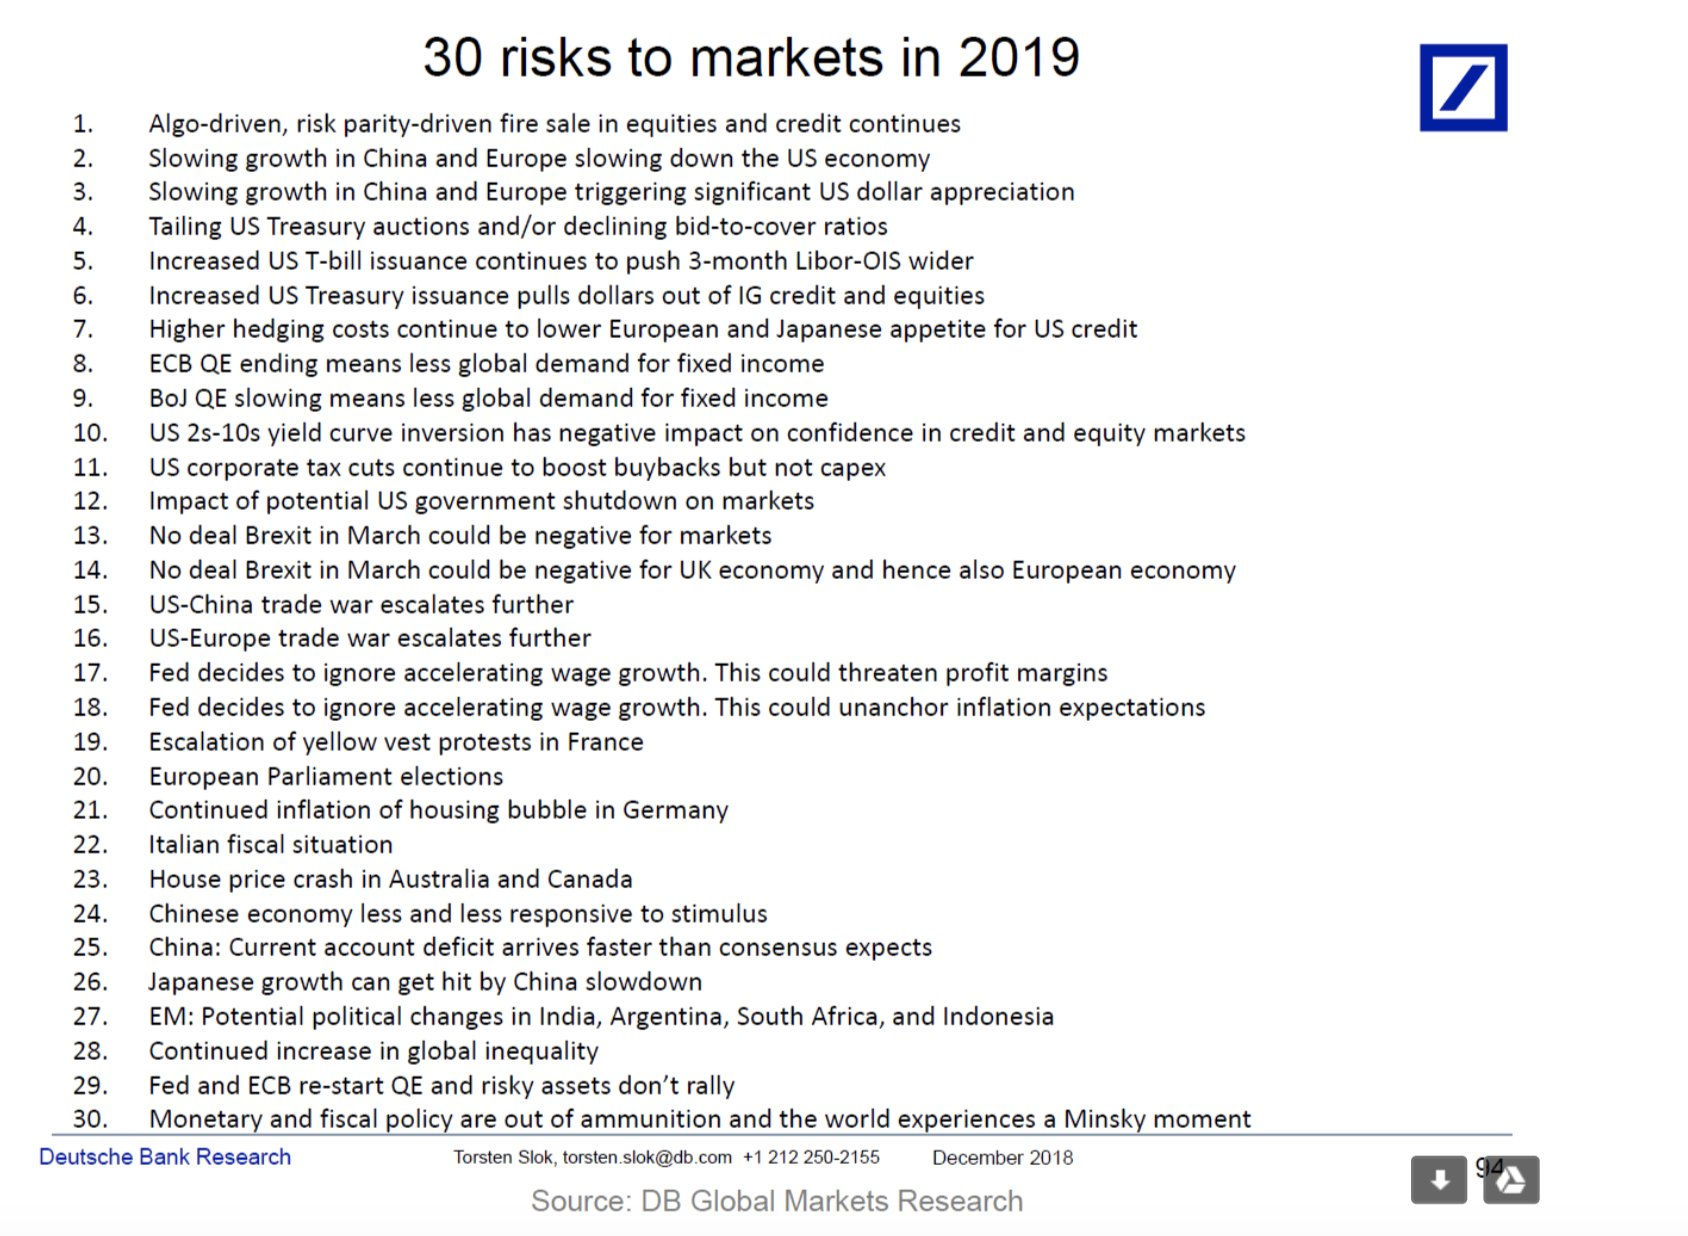 30 things the markets will…